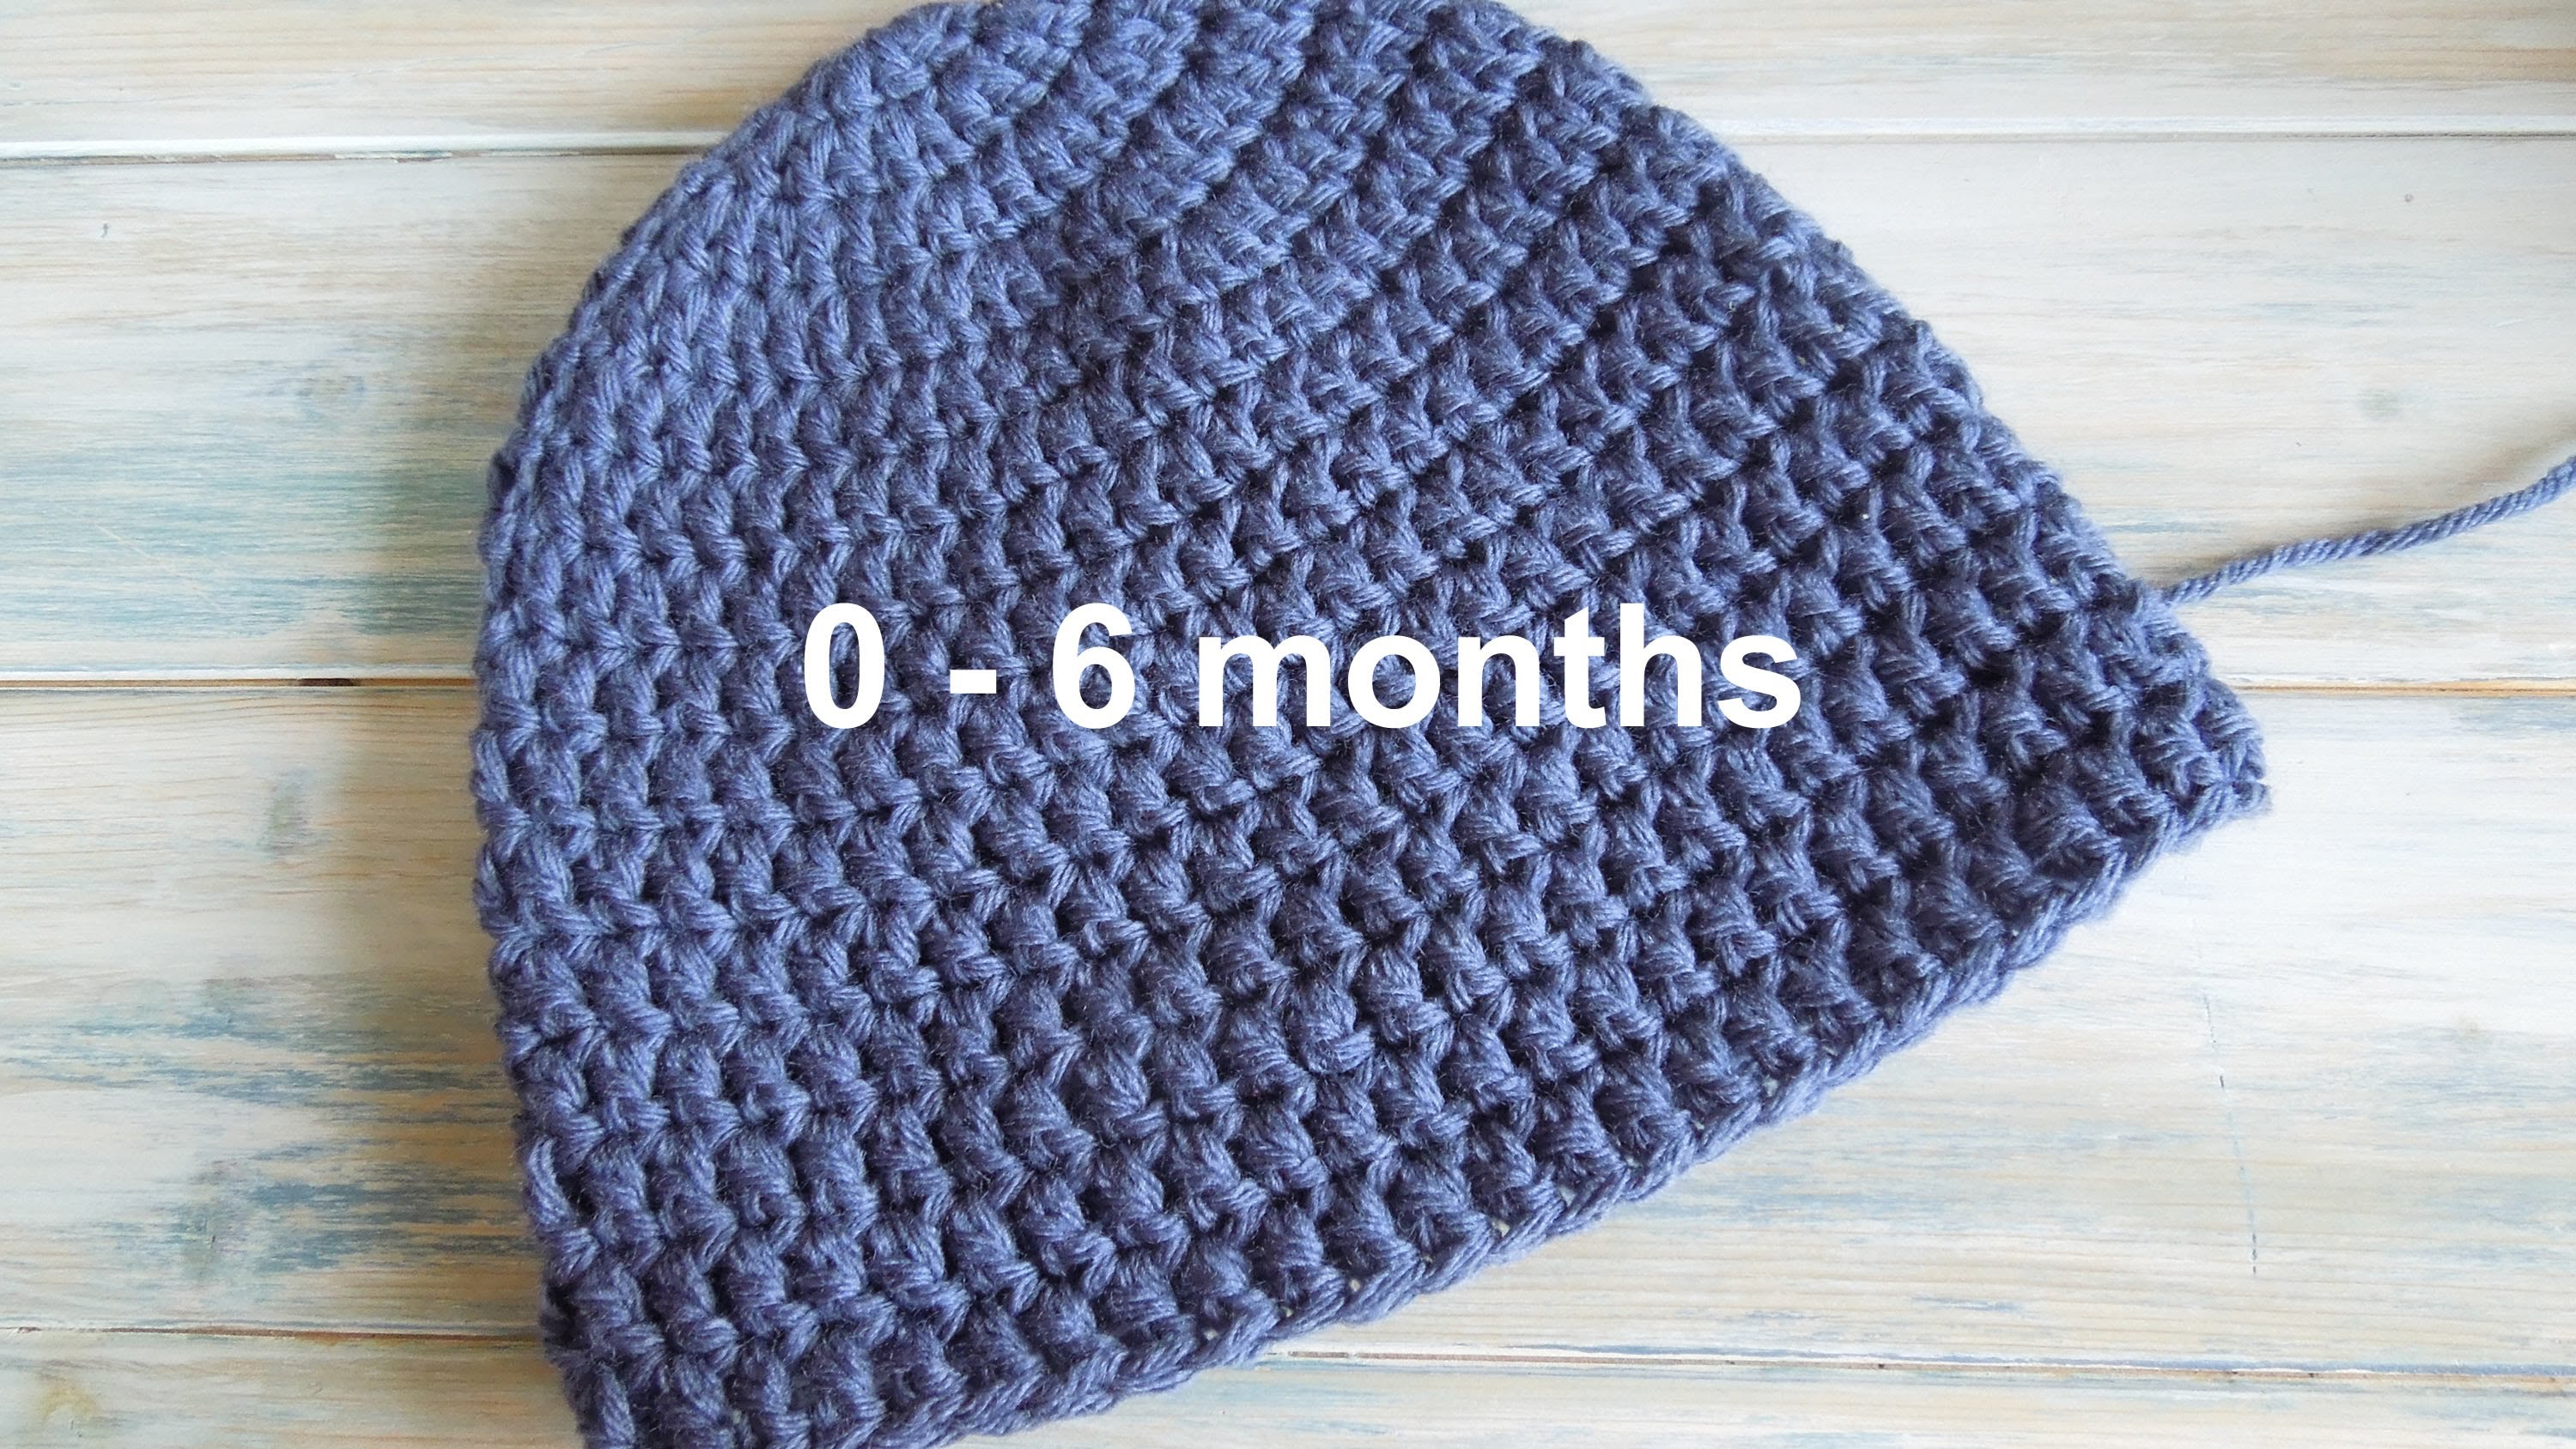 crochet baby hats (crochet) how to - crochet a simple baby beanie for 0-6 months - nfqskbk